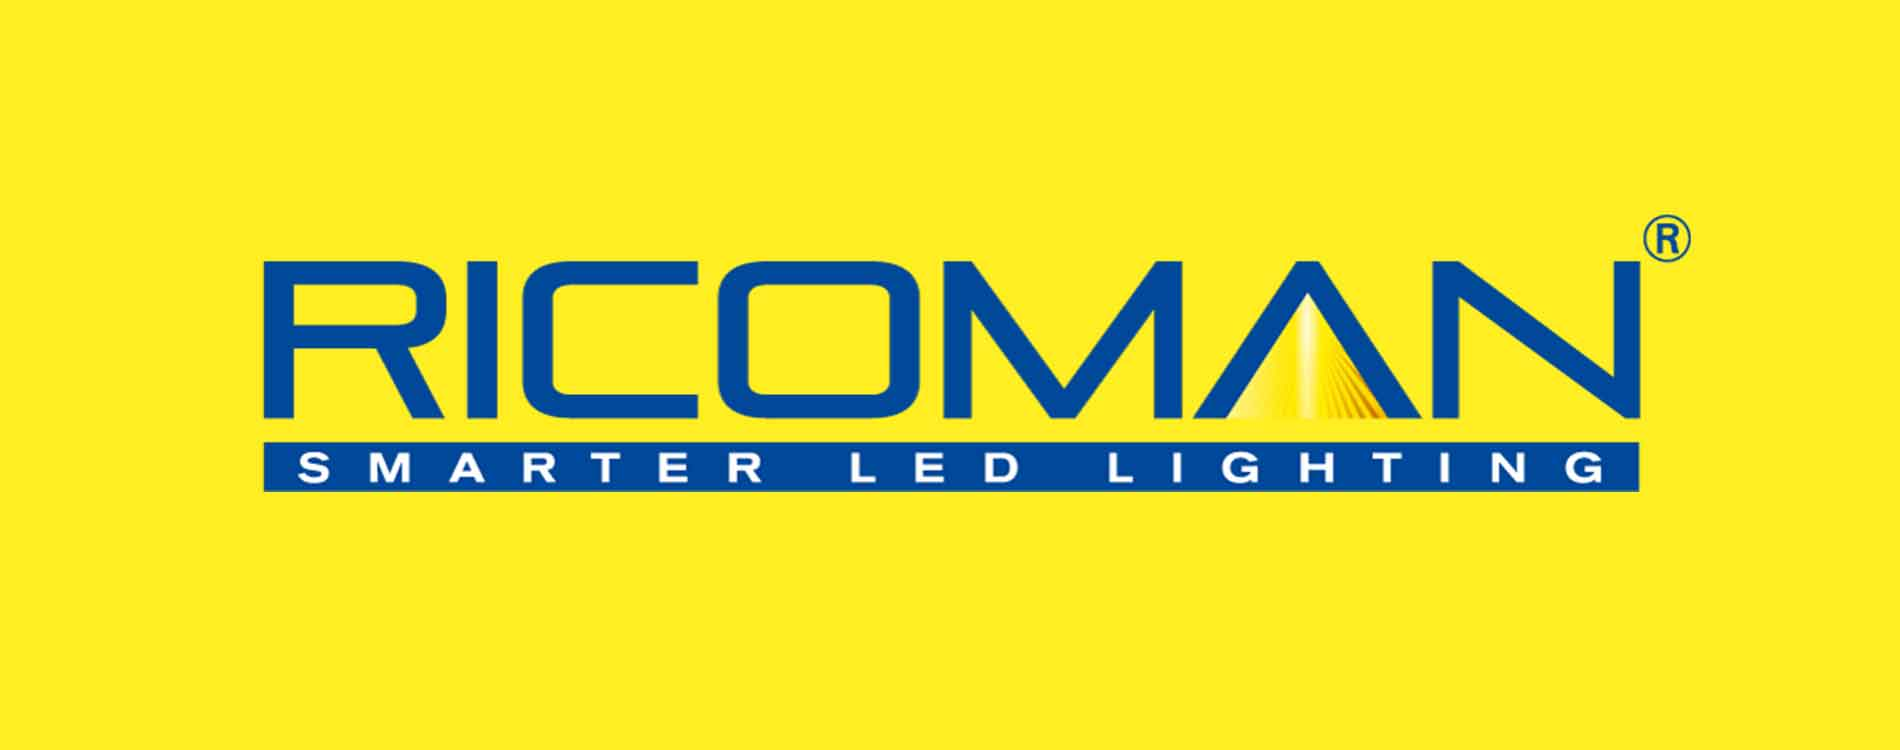 Ricoman Smarter LED Lighting Thumbnail